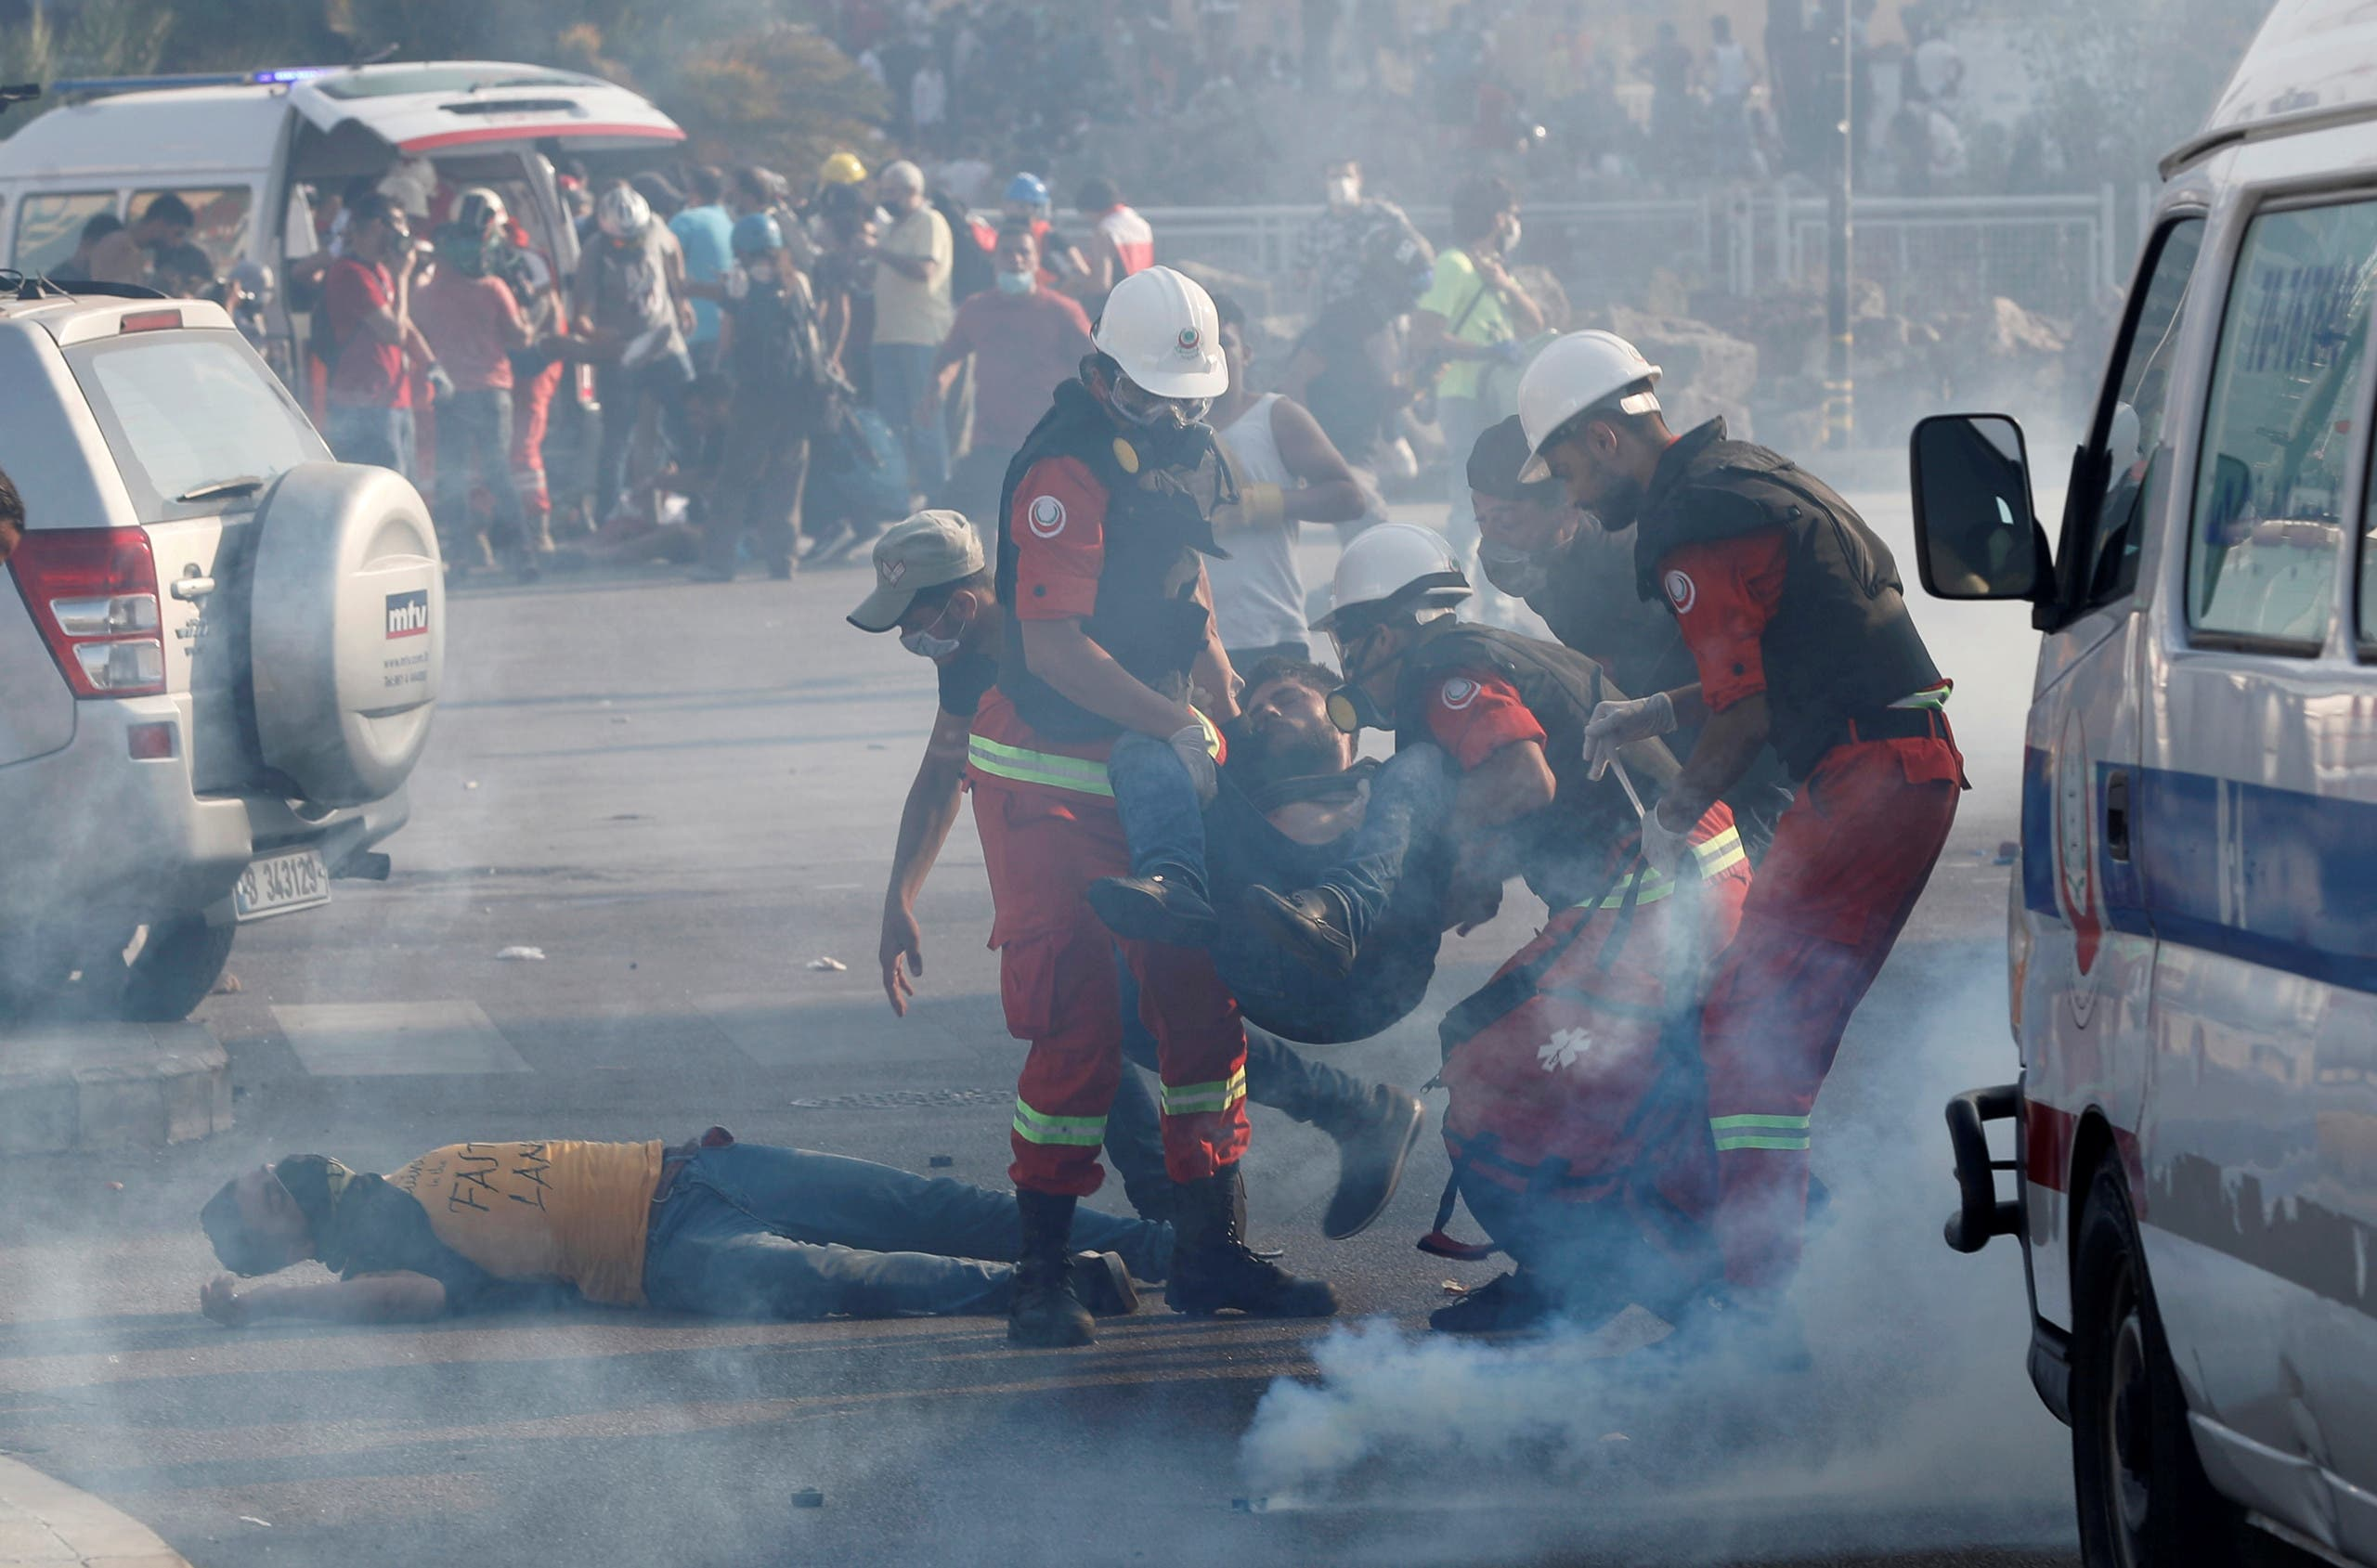 Rescuers assist demonstrators during a protest, following Tuesday's blast, in Beirut, Lebanon August 8, 2020.(Reuters)